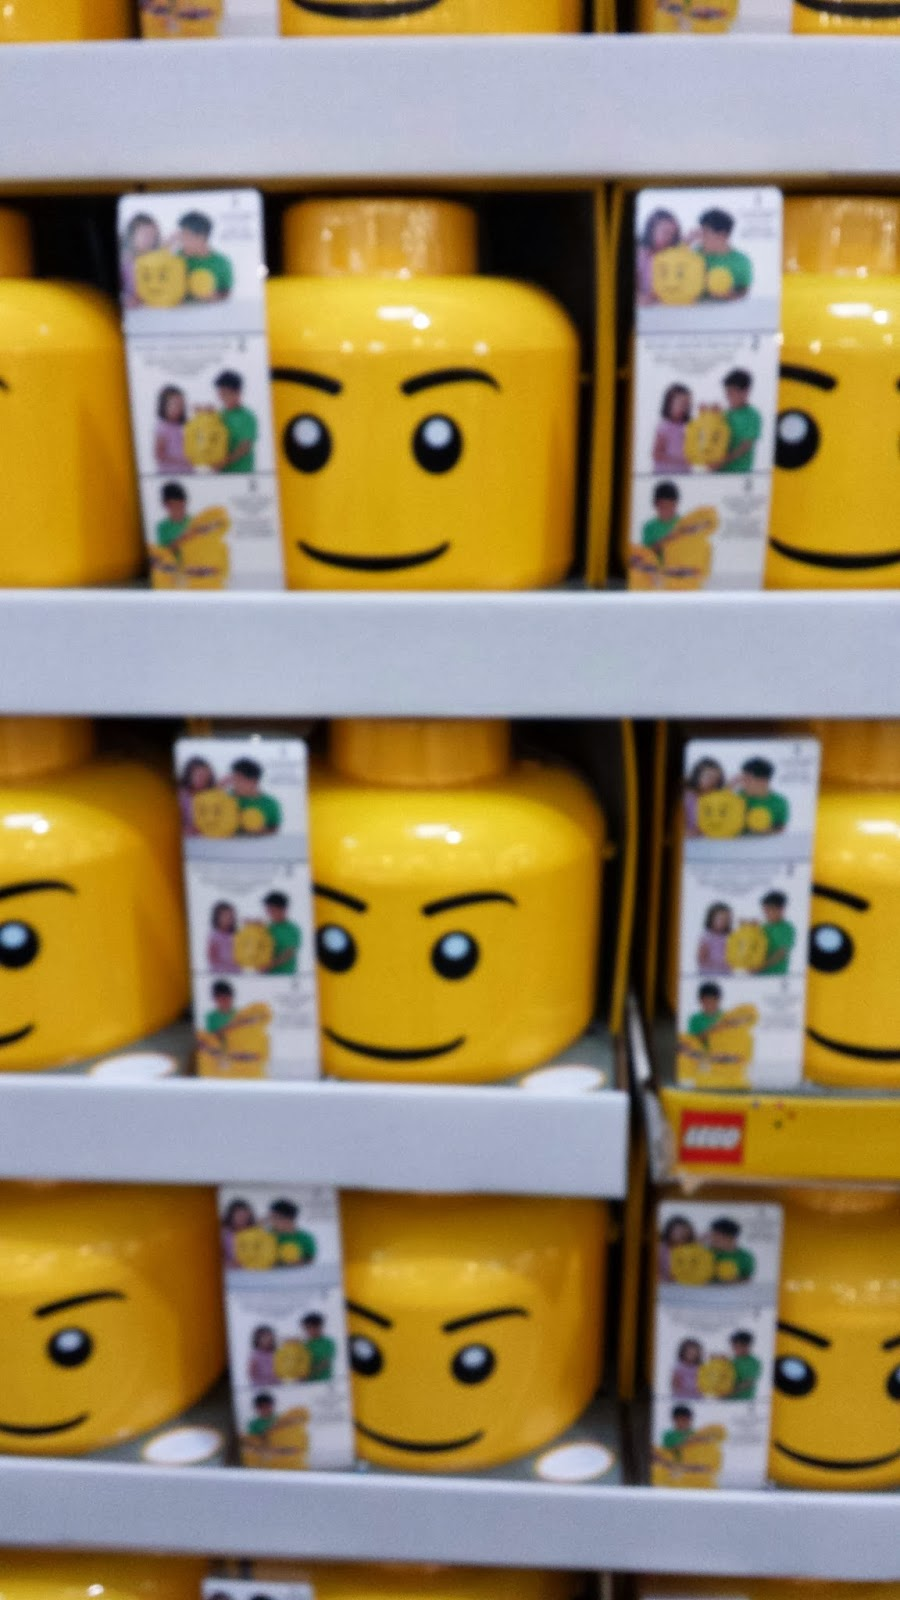 Cathy Thinking Out Loud ADD THIS TO YOUR GIFT GUIDE GIANT LEGO